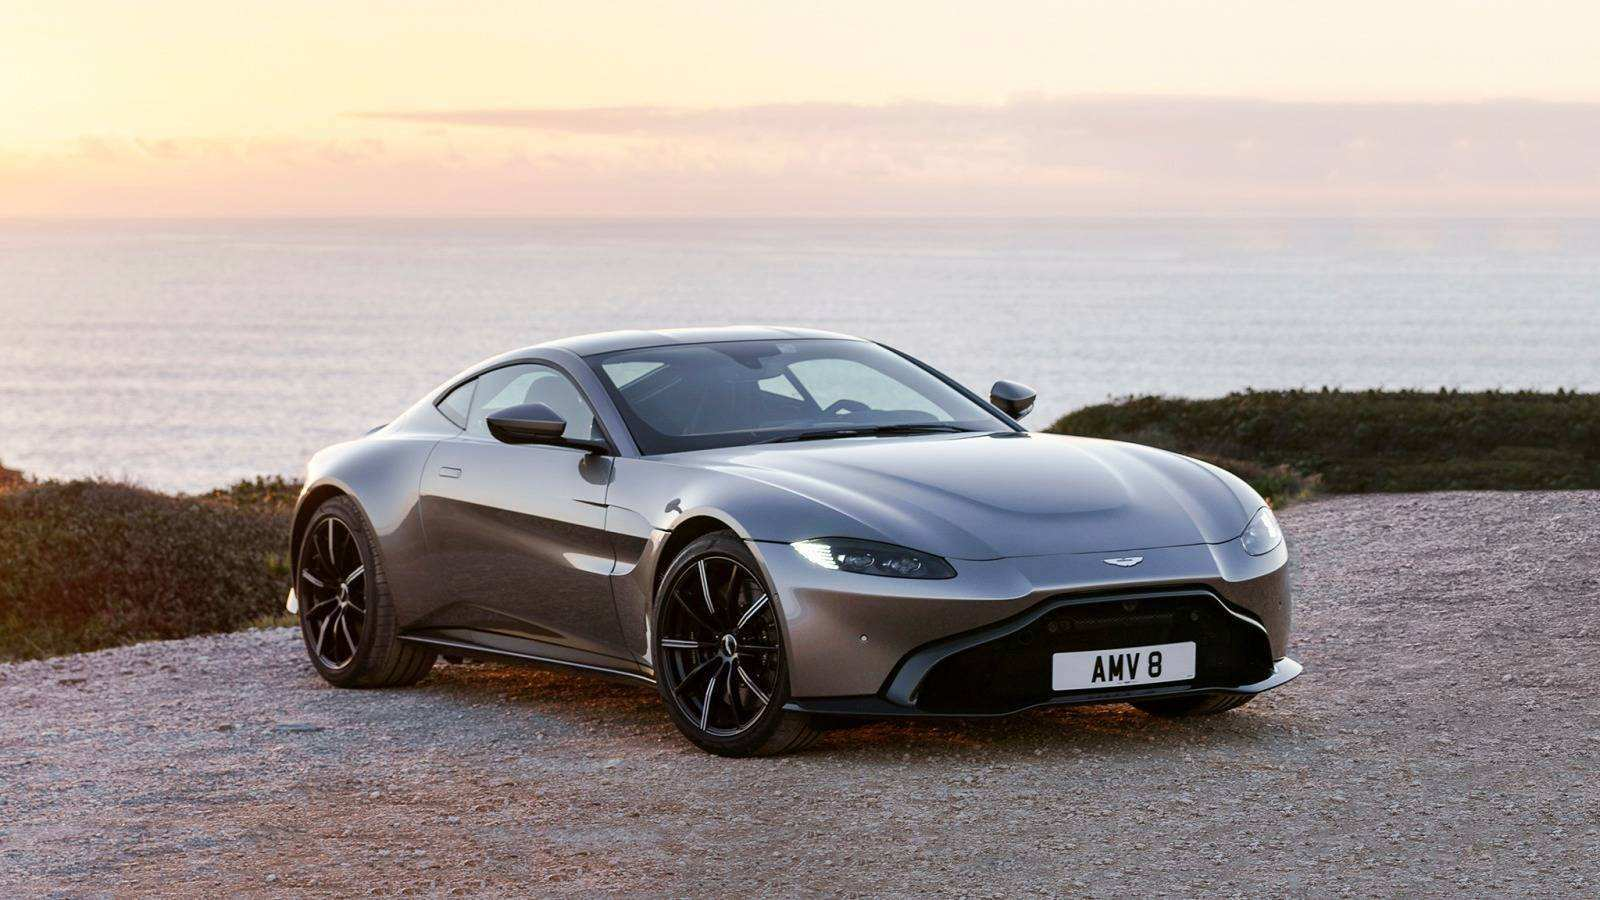 31 Gallery of 2019 Aston Martin Vanquish Price New Review with 2019 Aston Martin Vanquish Price